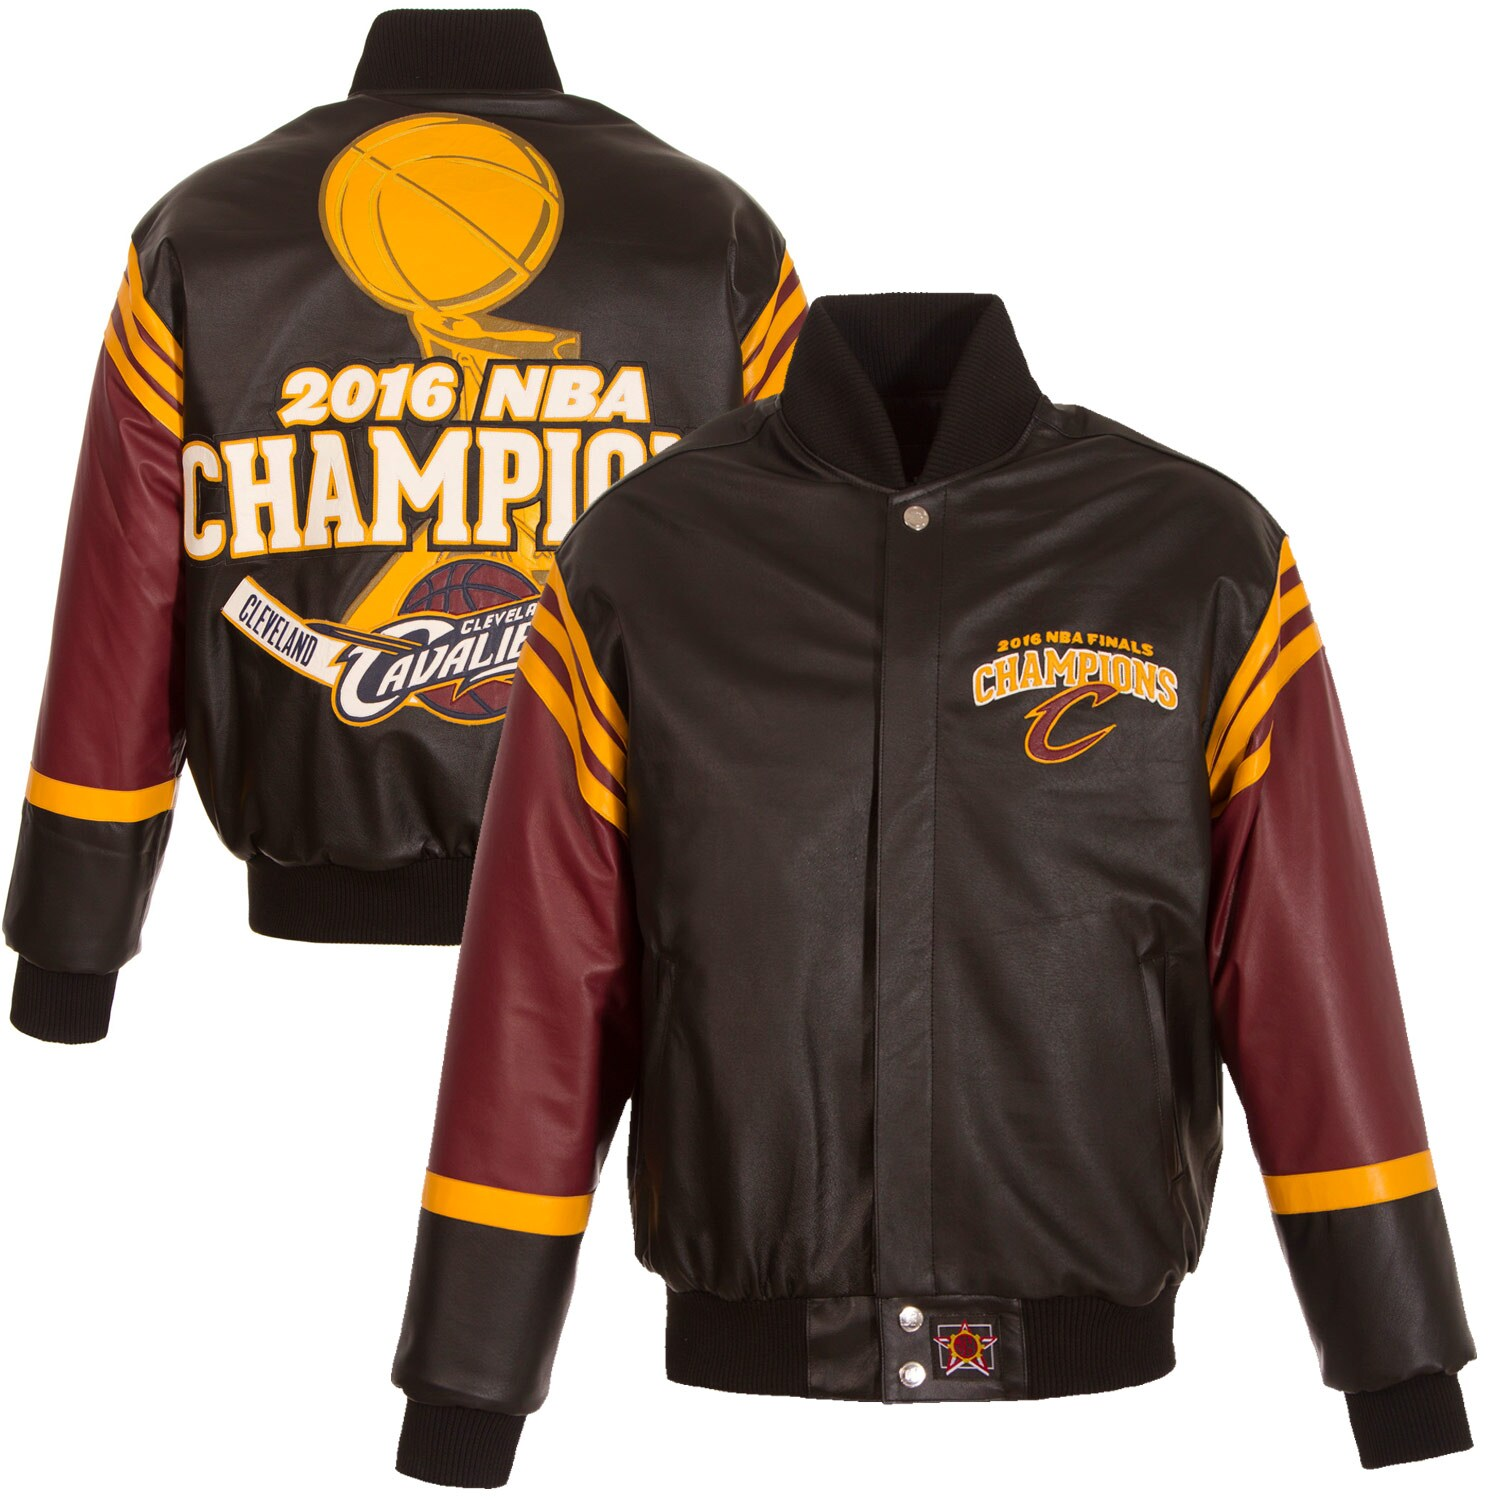 Cleveland Cavaliers JH Design 2016 NBA Finals Champions Domestic All Leather Jacket - Black